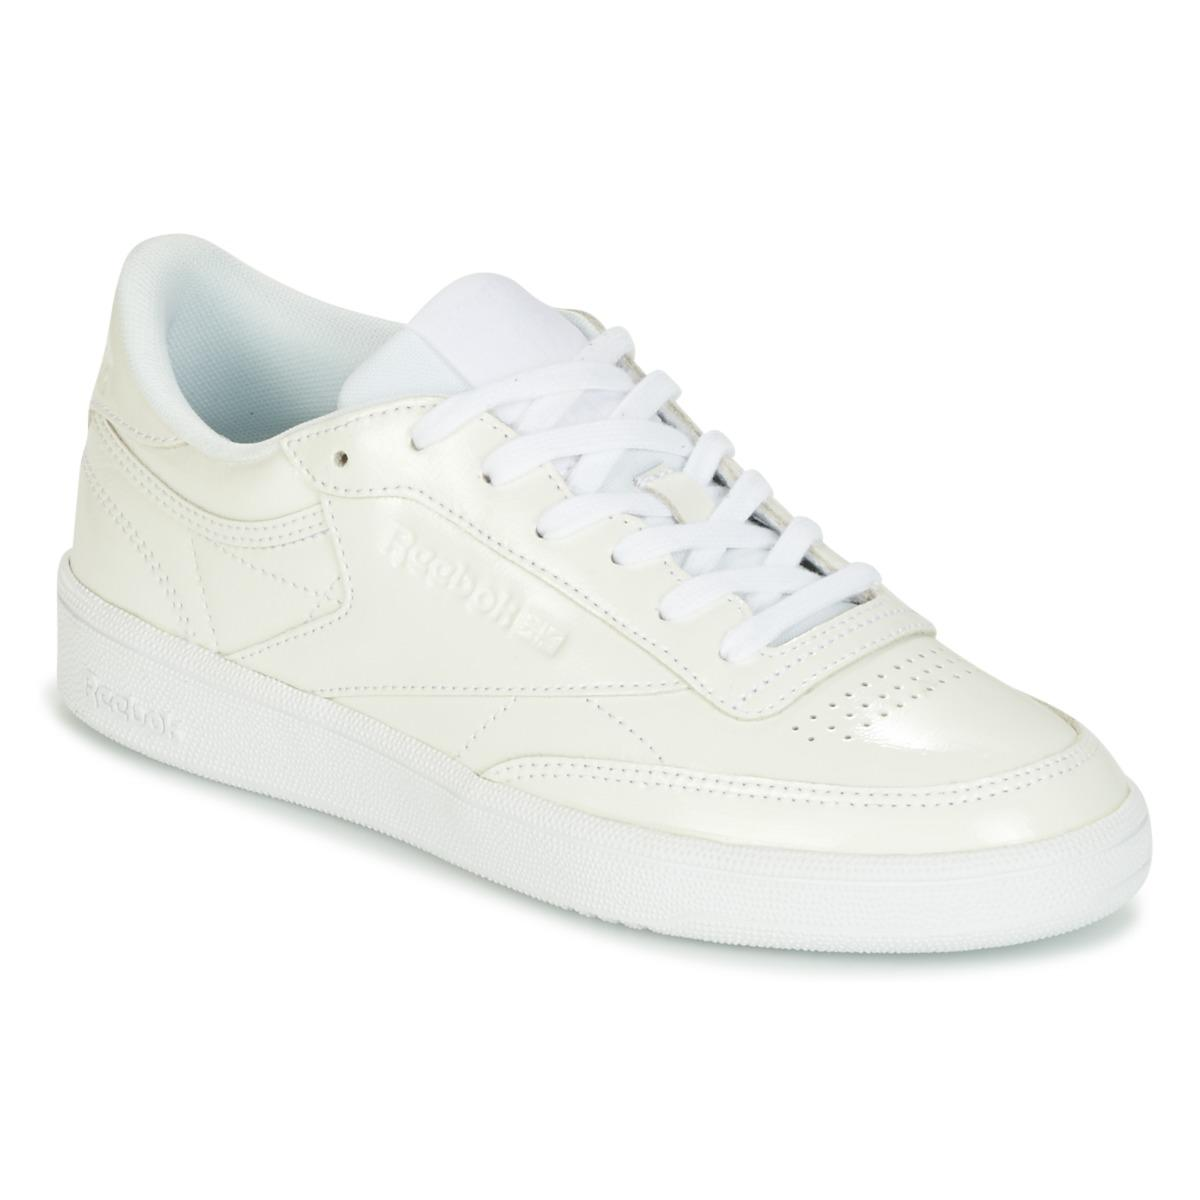 57b19992648 Reebok Club C 85 Patent Shoes (trainers) in White - Lyst